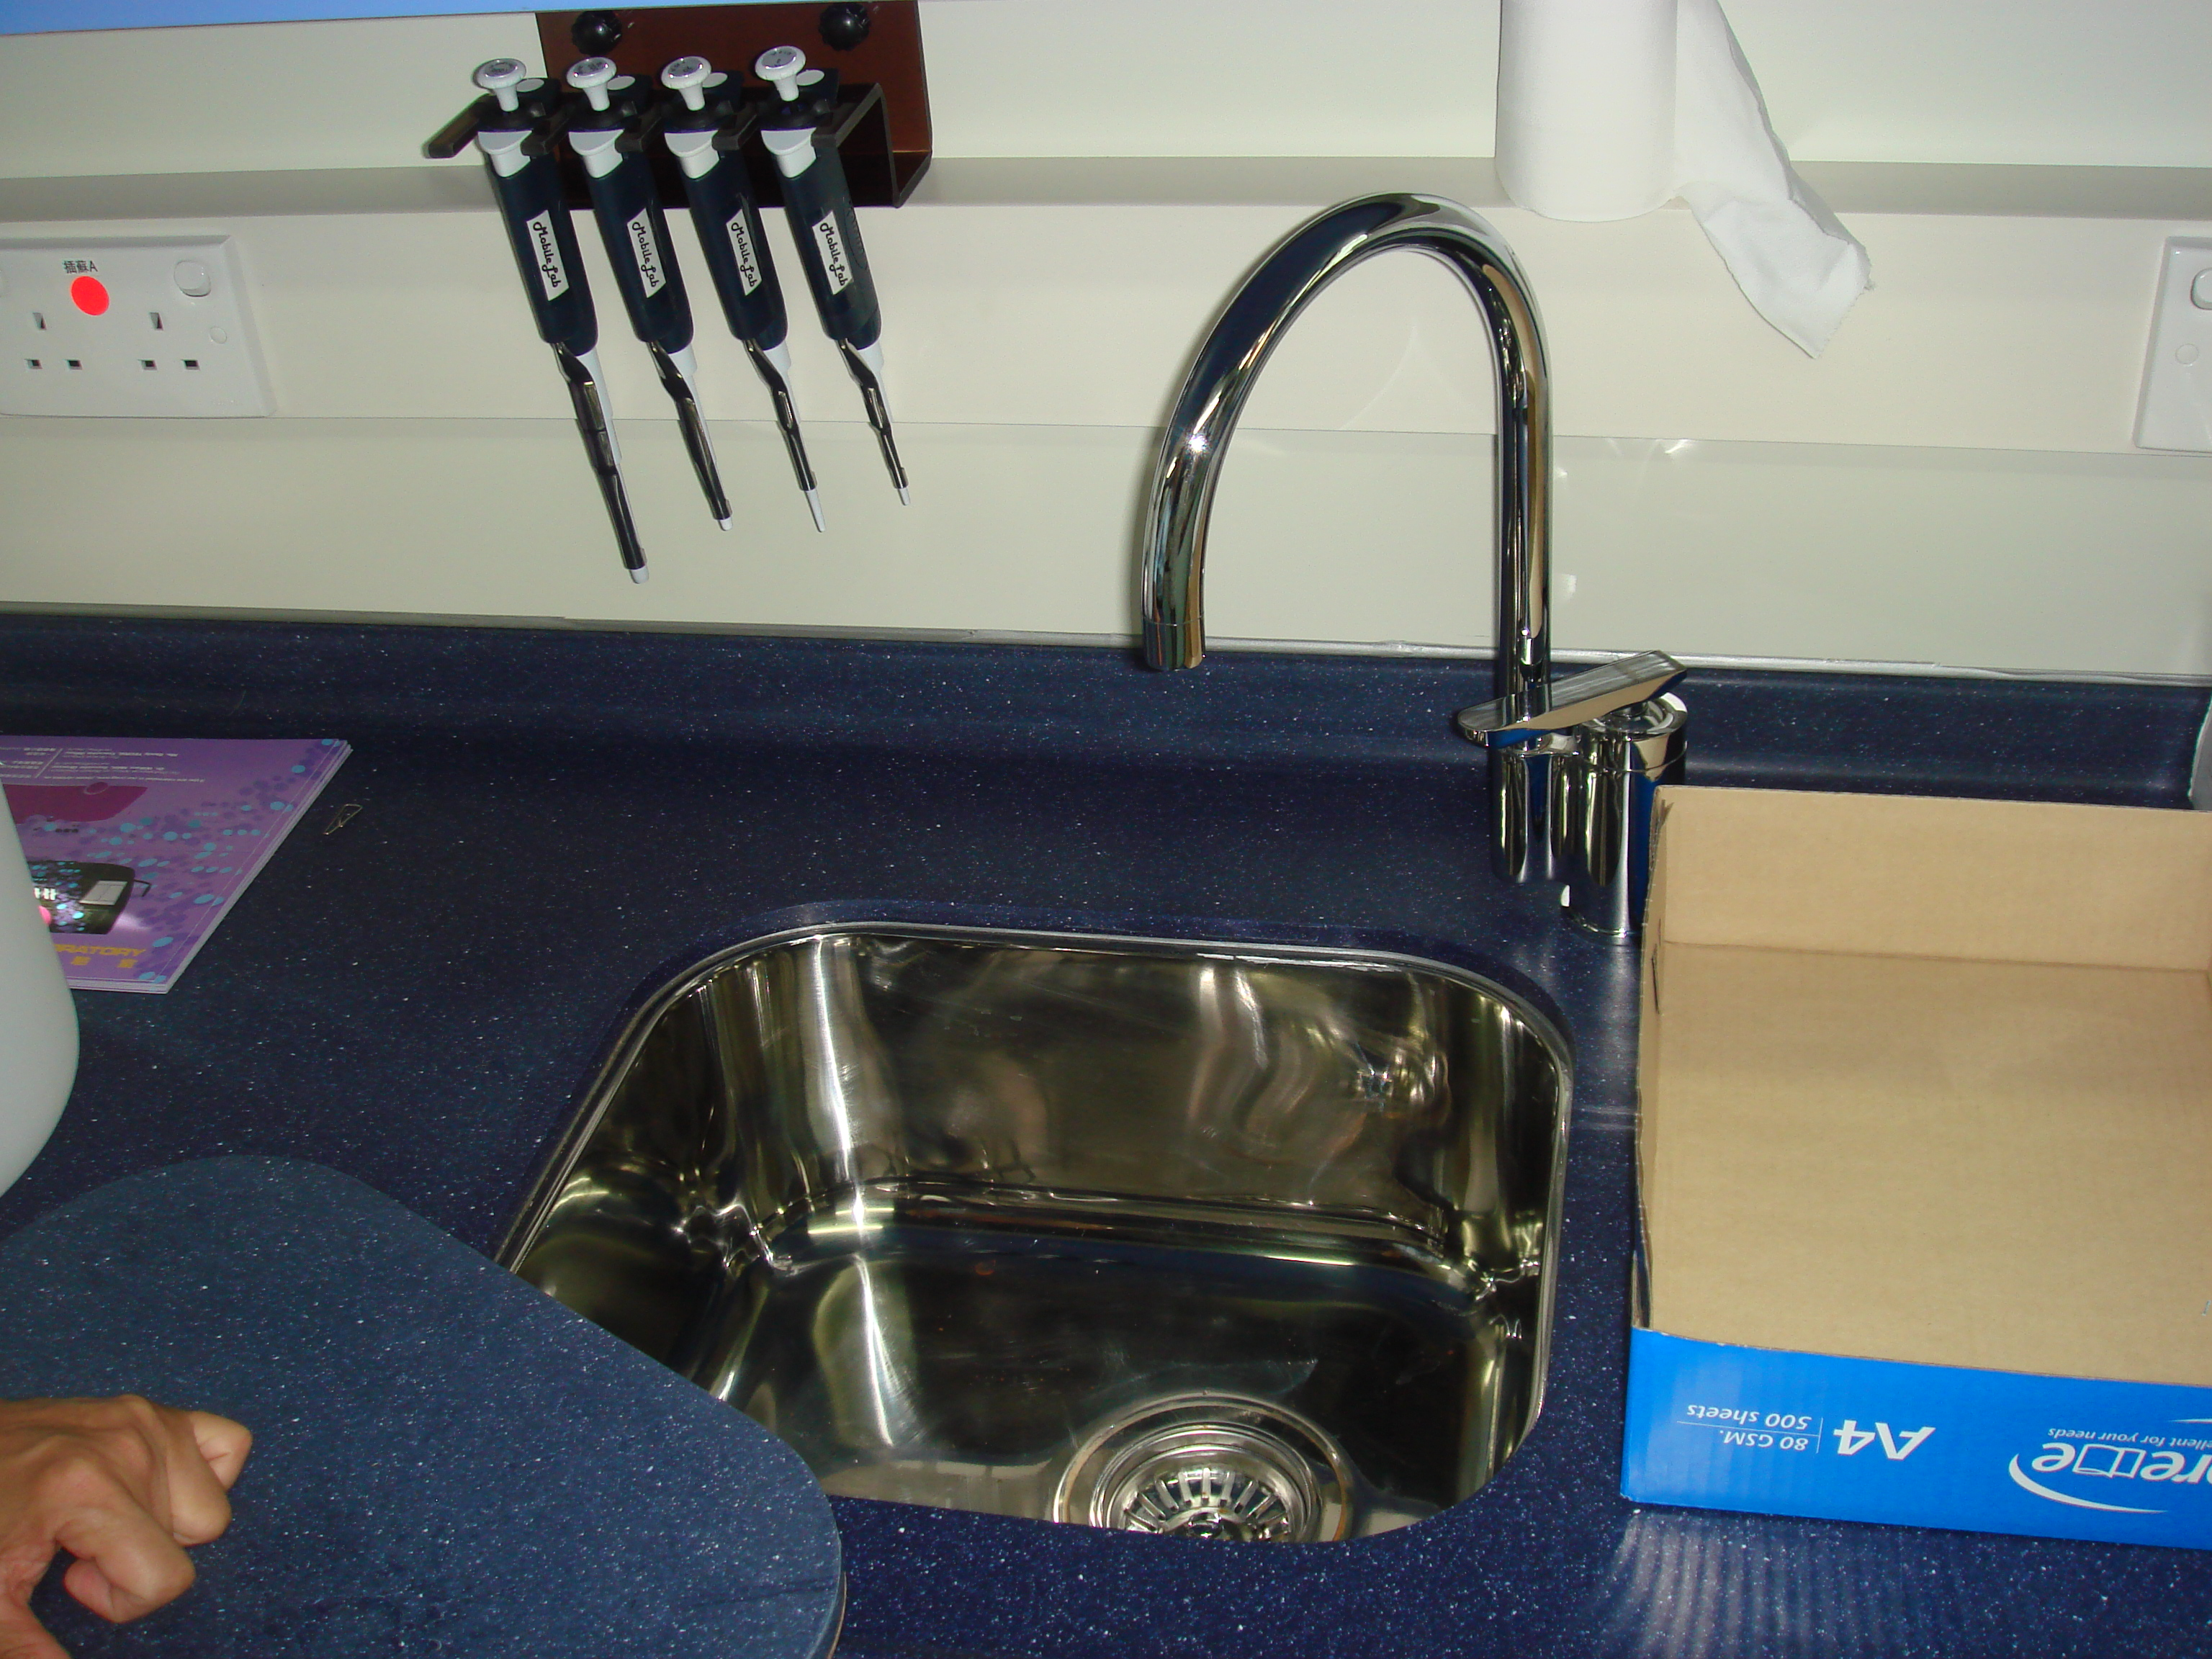 There is even a sink in the bus!